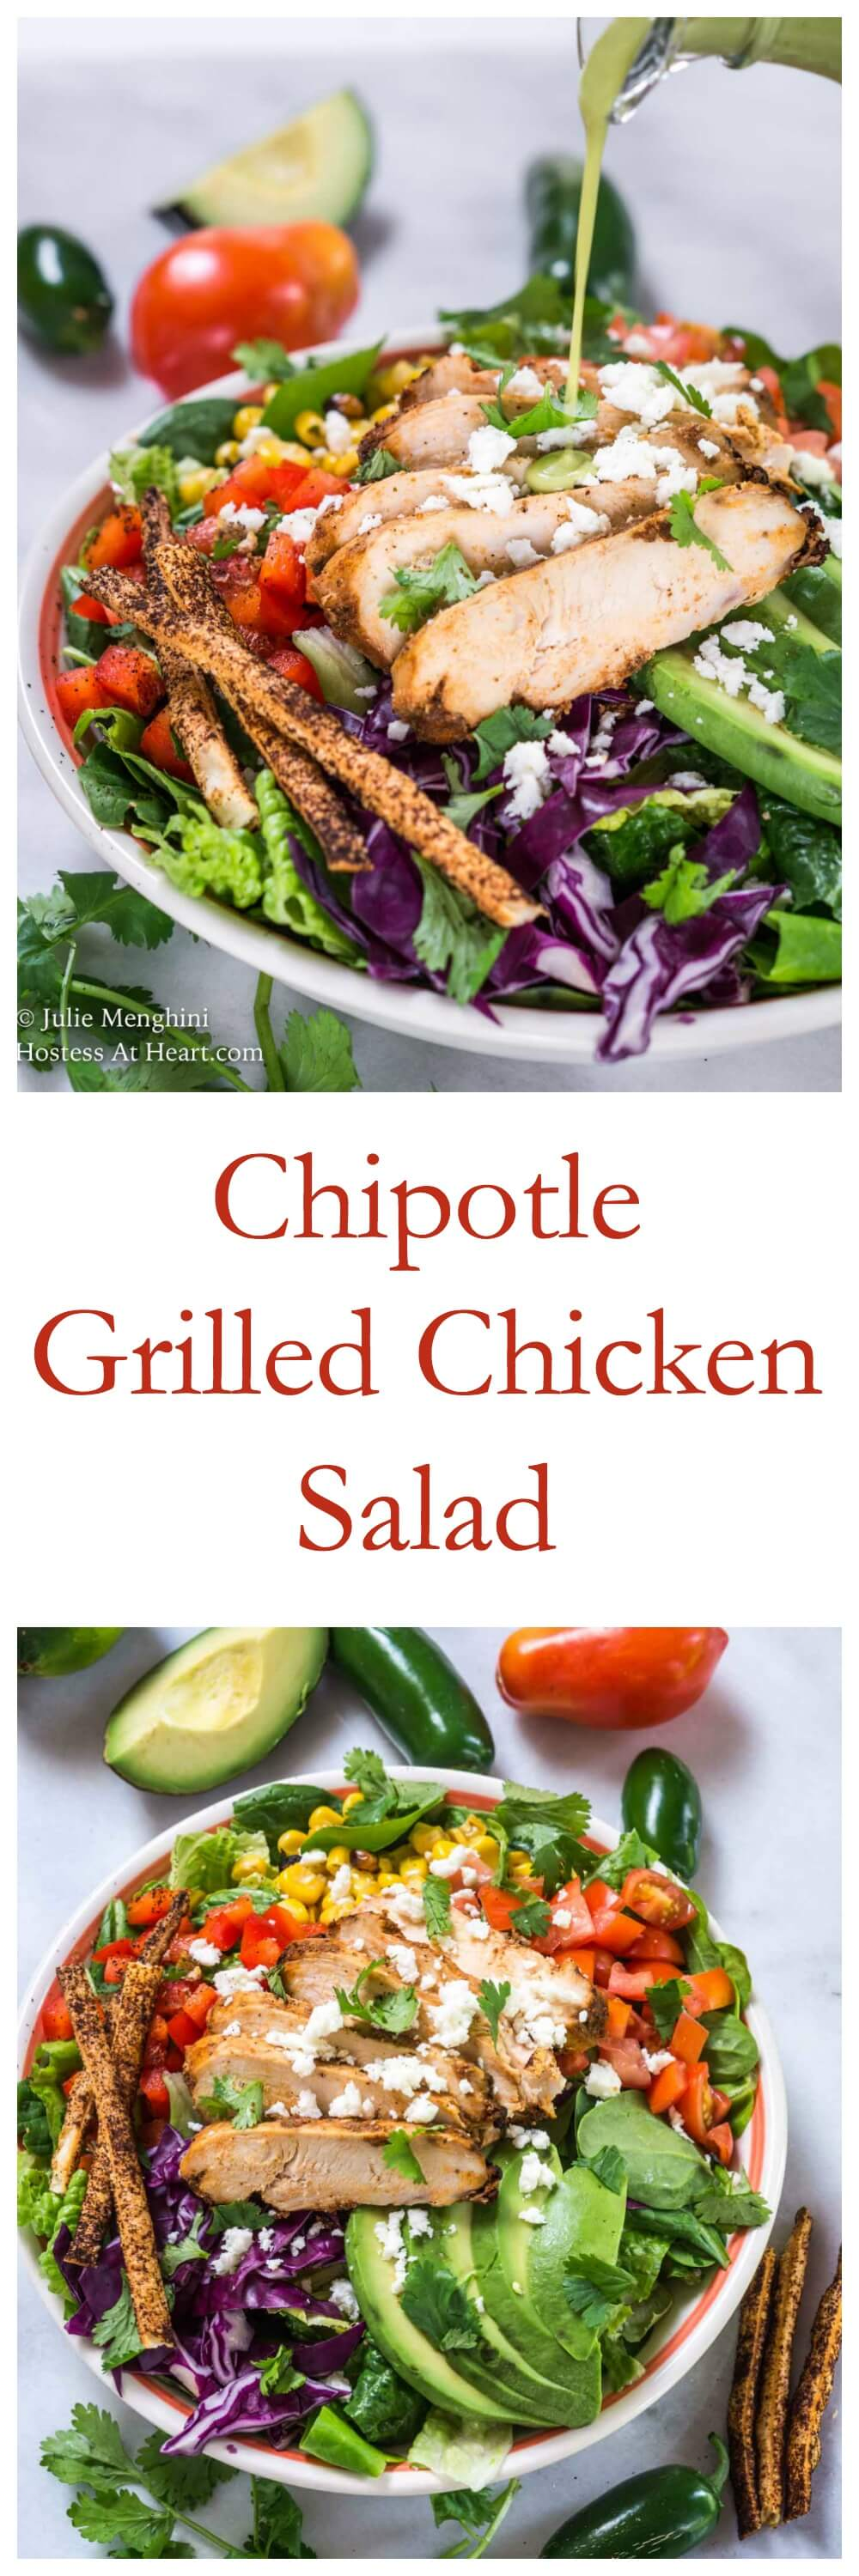 Chipotle Grilled Chicken salad has a Honey Jalapeno Vinaigrette that makes this salad sweet an spicy.  It's full of colors, textures, and delicious flavors. #easysaladrecipe, #freshsaladrecipe, #healthy, #salad, #cabbage #chipotlesalad